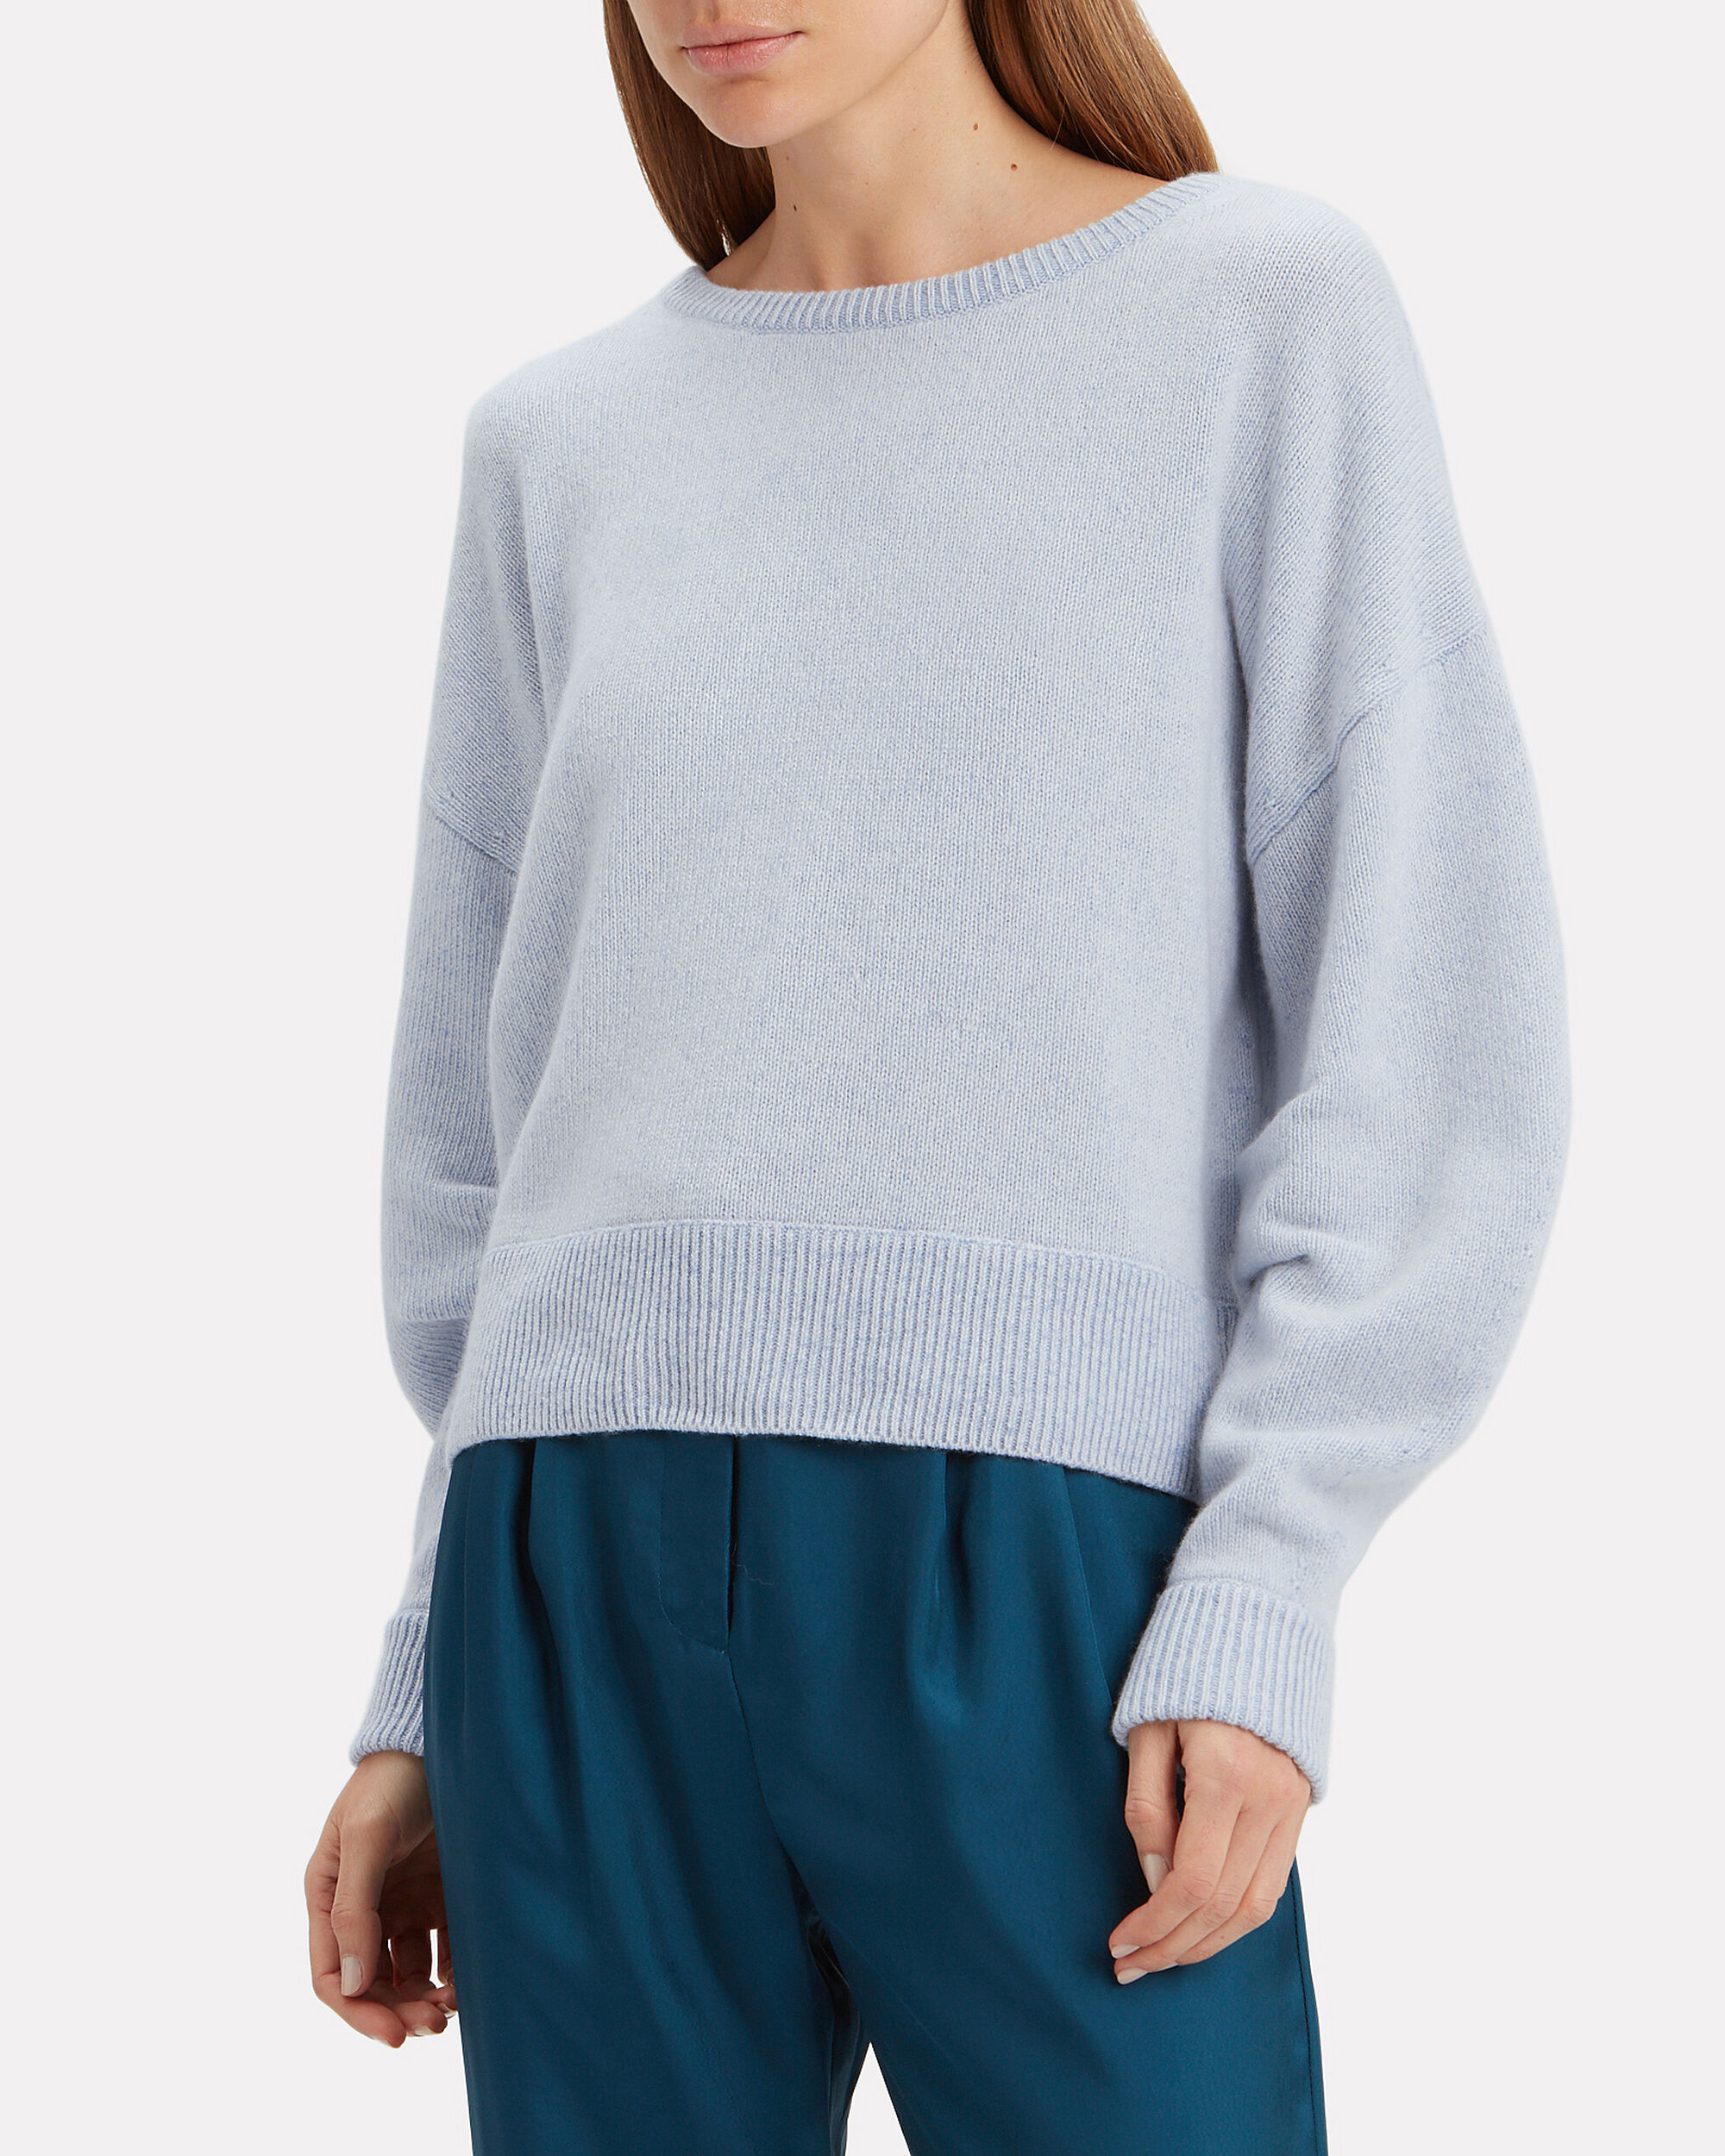 Alta Skylar Cashmere Blue Sweater, LIGHT BLUE, hi-res